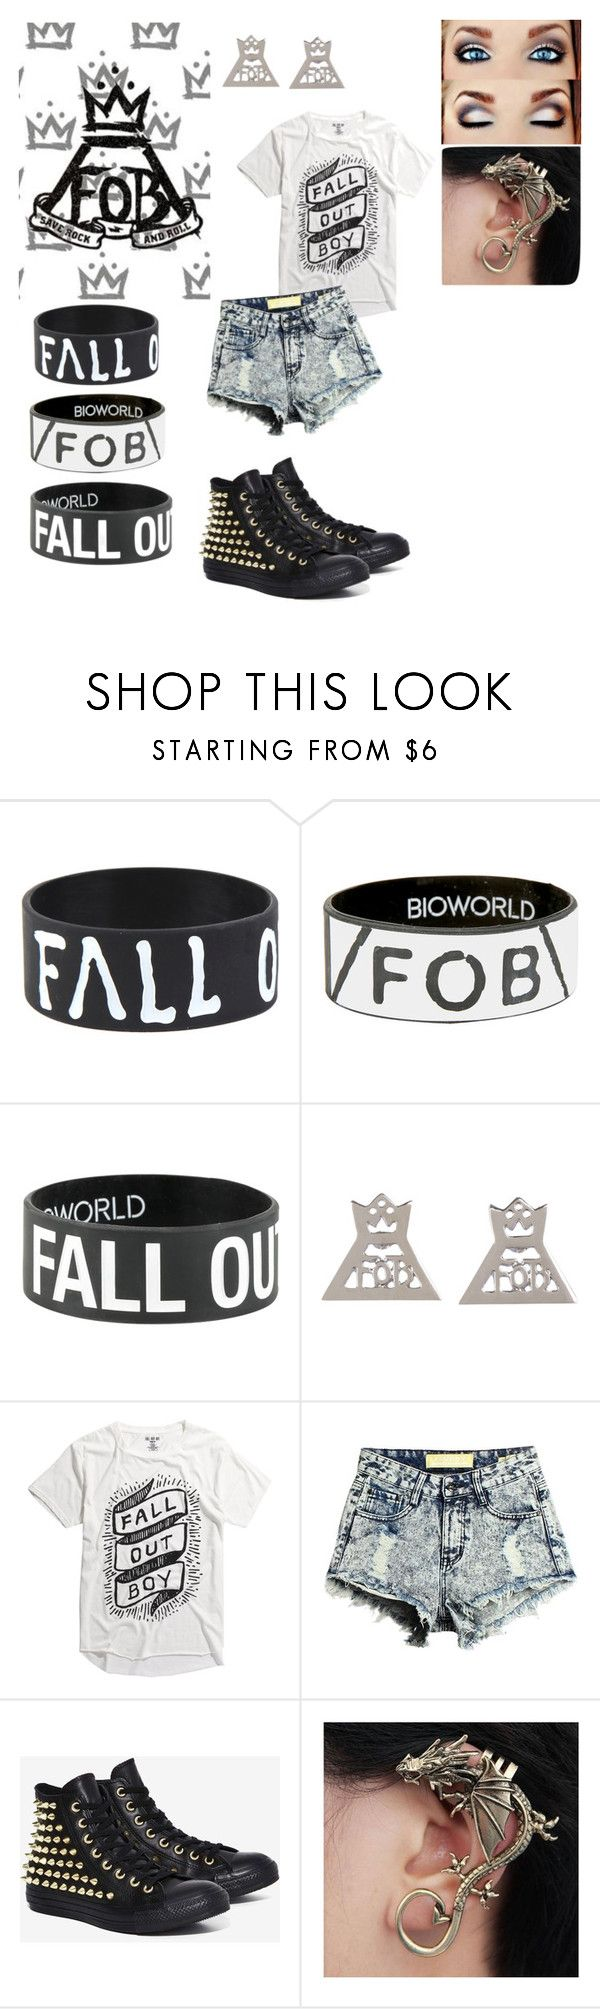 """Fall out boy concert"" by starbucksgirl3421 ❤ liked on Polyvore featuring Converse"